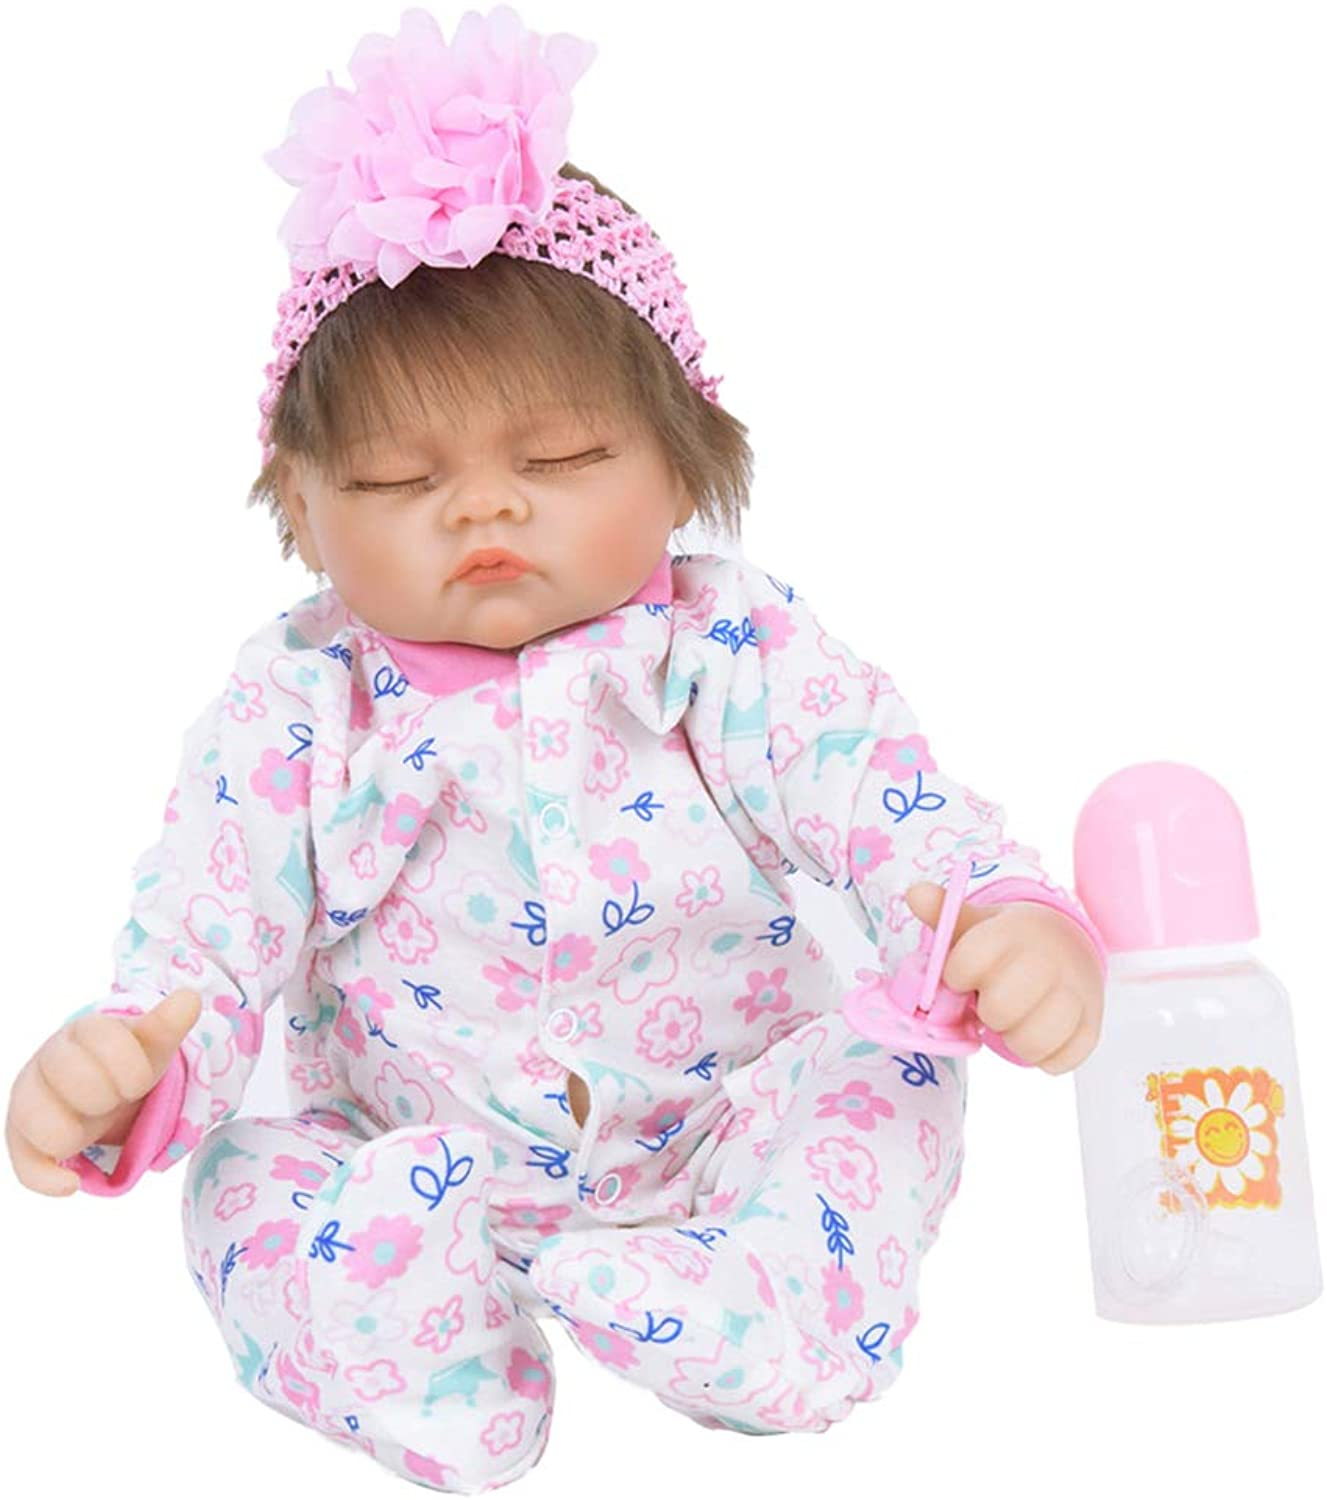 Baoblaze Adorable 22inch Realistic Reborn Doll Native American Newborn Infant Baby Doll Mold with Rompers Outfits and Nursing Accessories